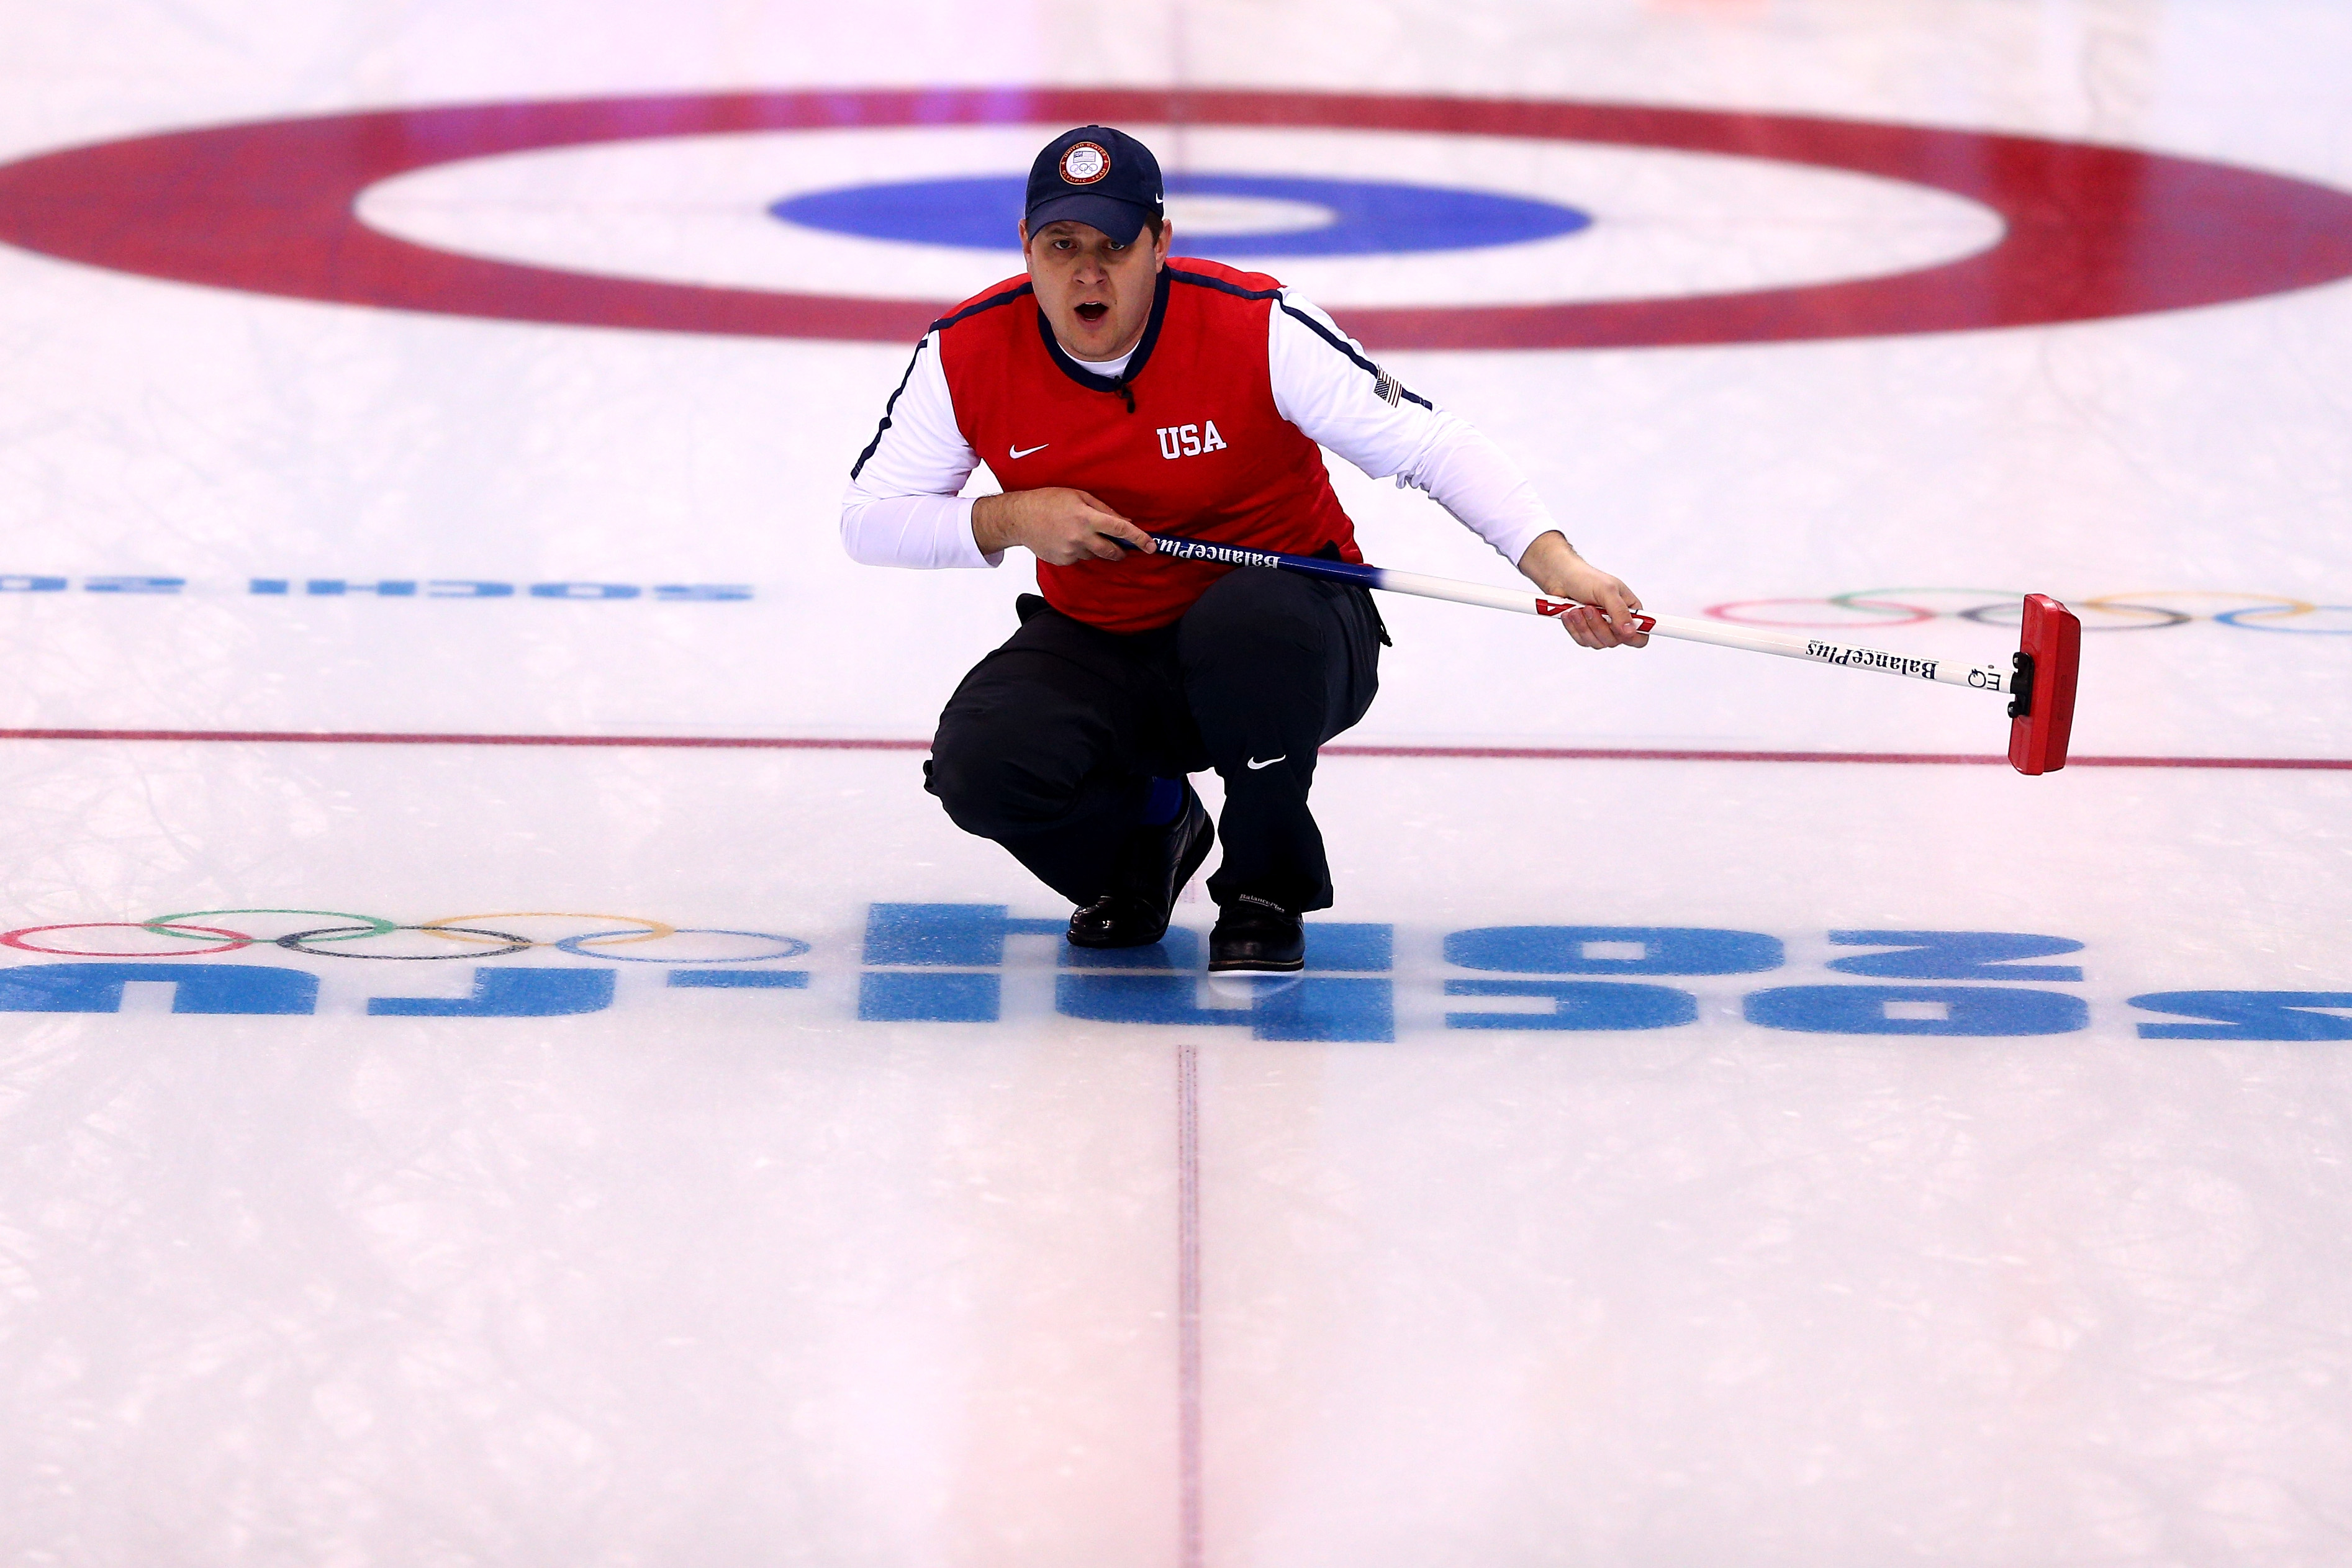 John Shuster of United States looks on during the Curling Men's Round Robin match on day 9 of the Sochi 2014 Winter Olympics at Ice Cube Curling Center on February 16, 2014 in Sochi, Russia. Paul Gilham—Getty Images